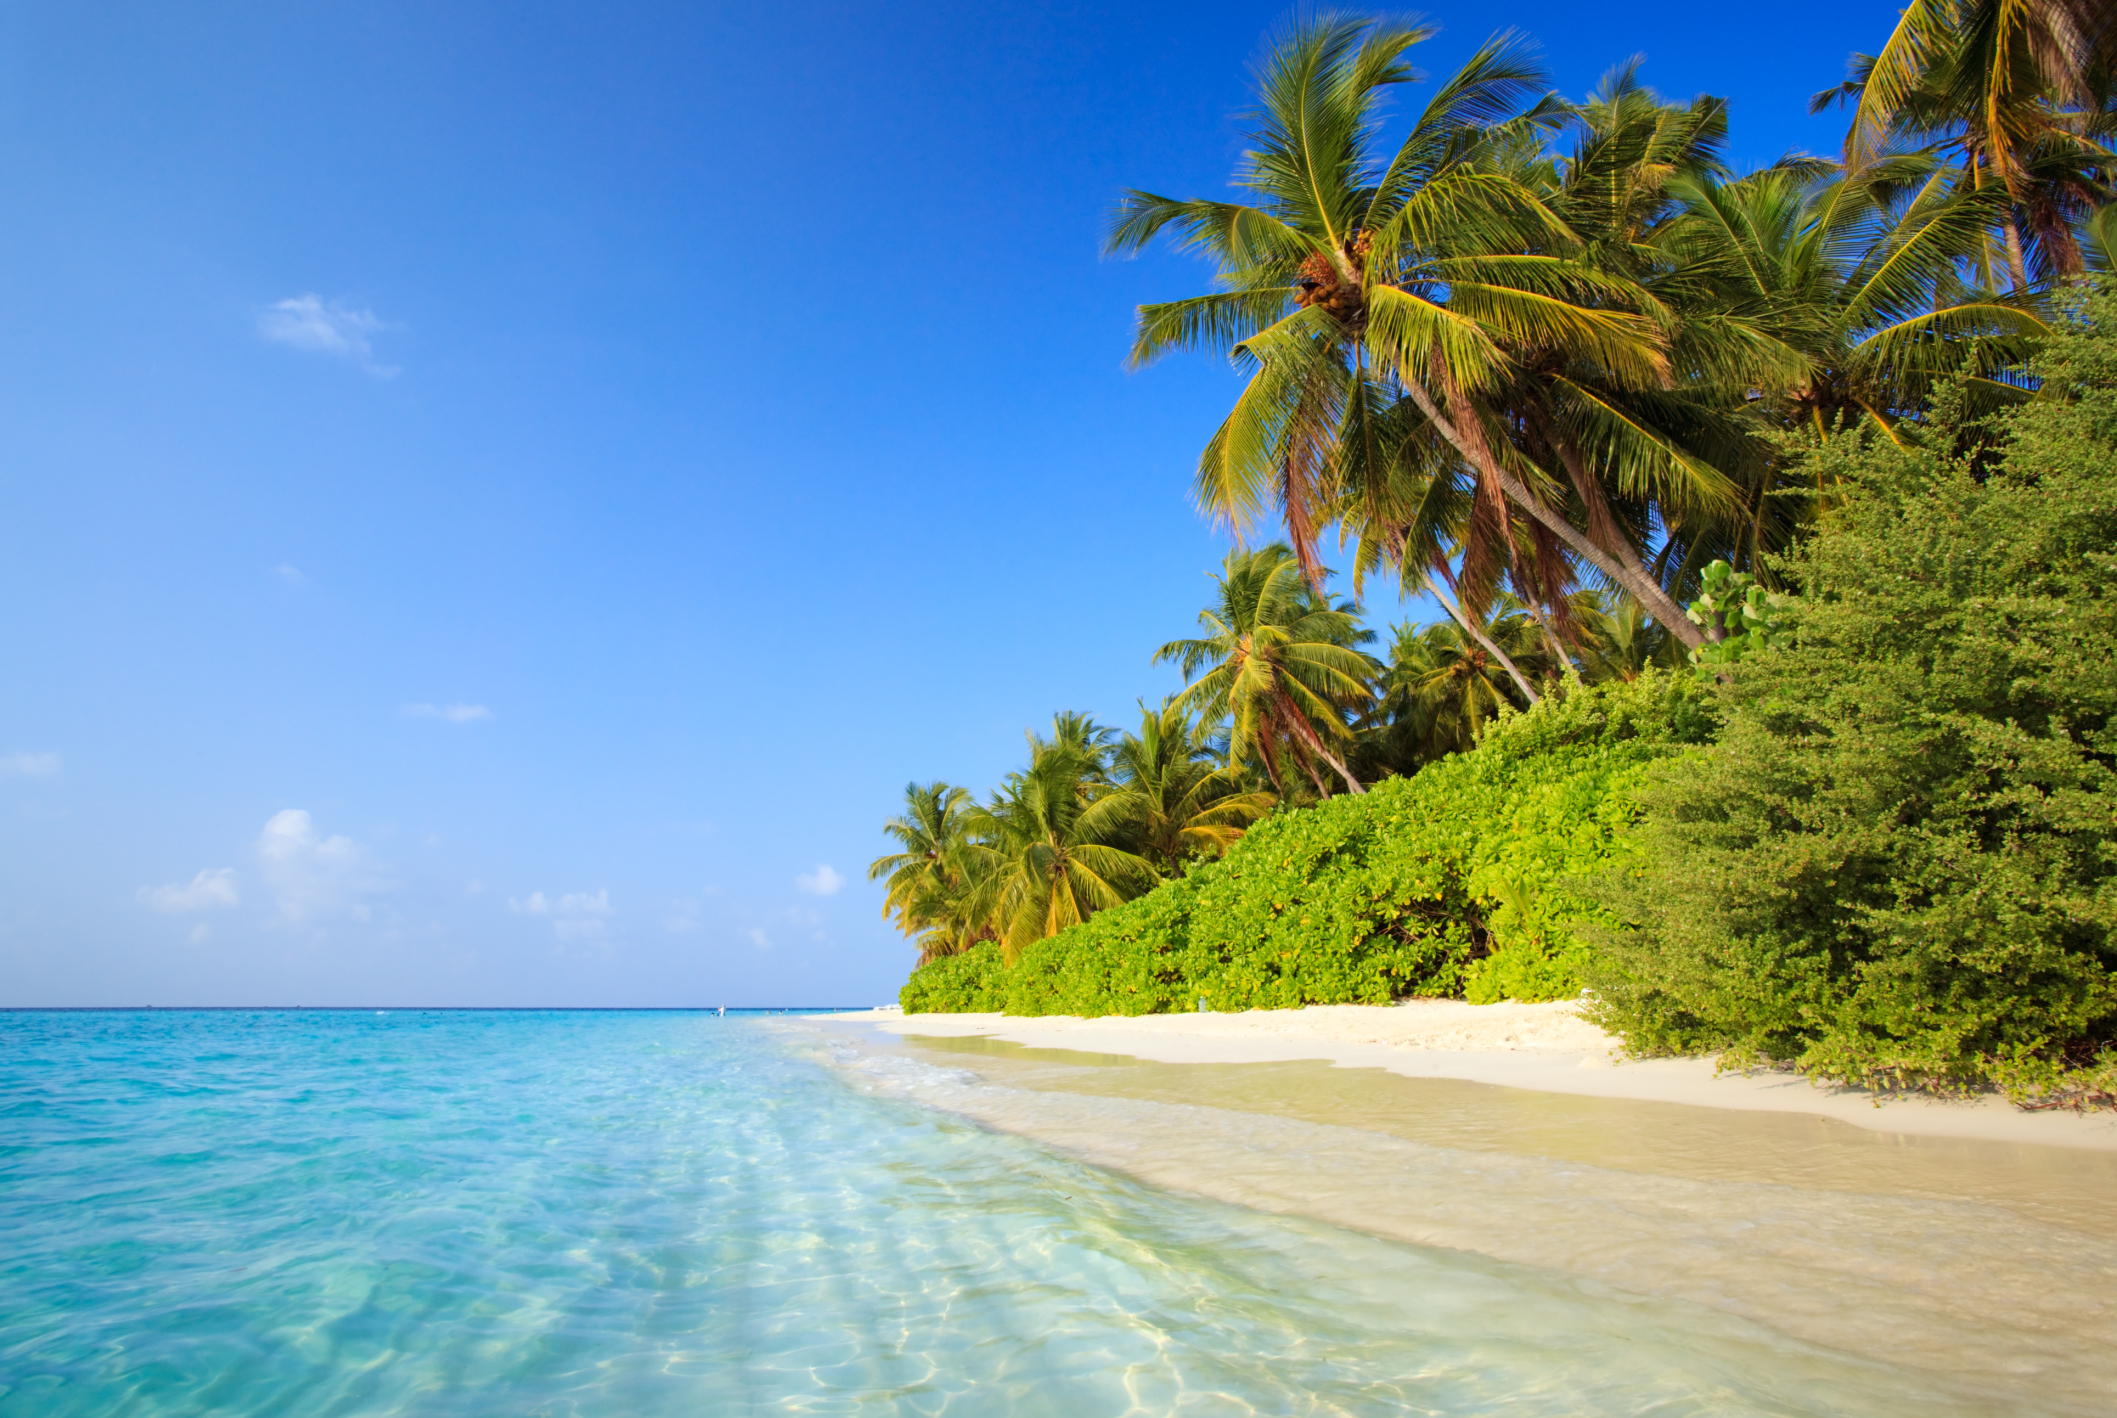 Beach holidays: Why you need to visit The Maldives before you die